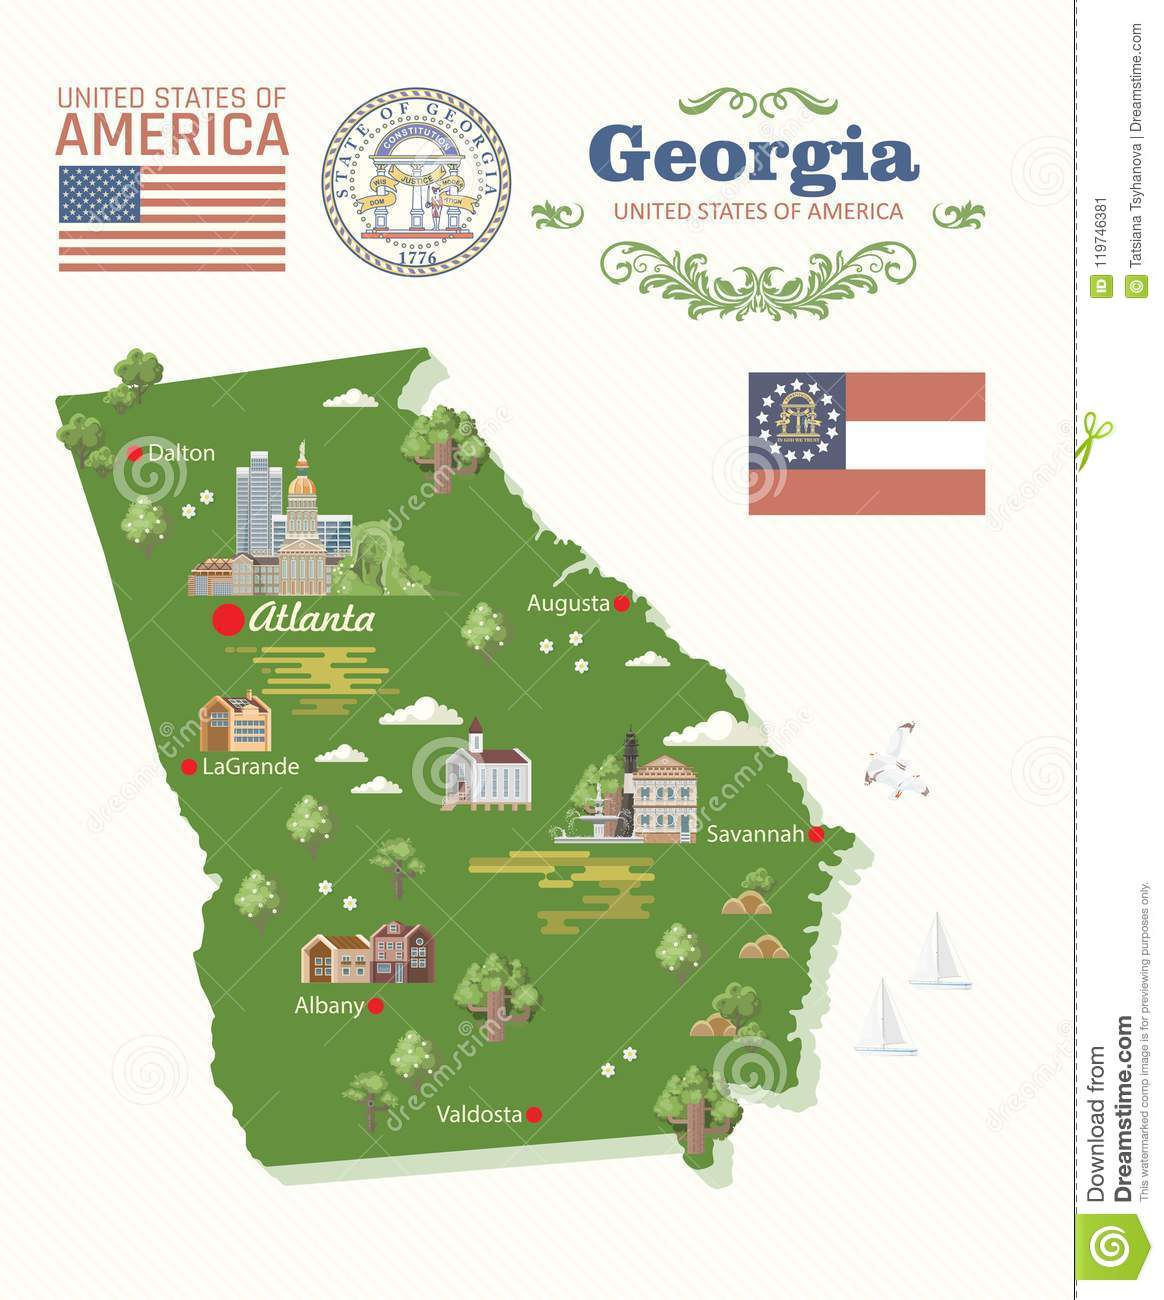 Map Of Georgia In Usa.Georgia Usa Banner With Map Peach State Vector Poster Travel